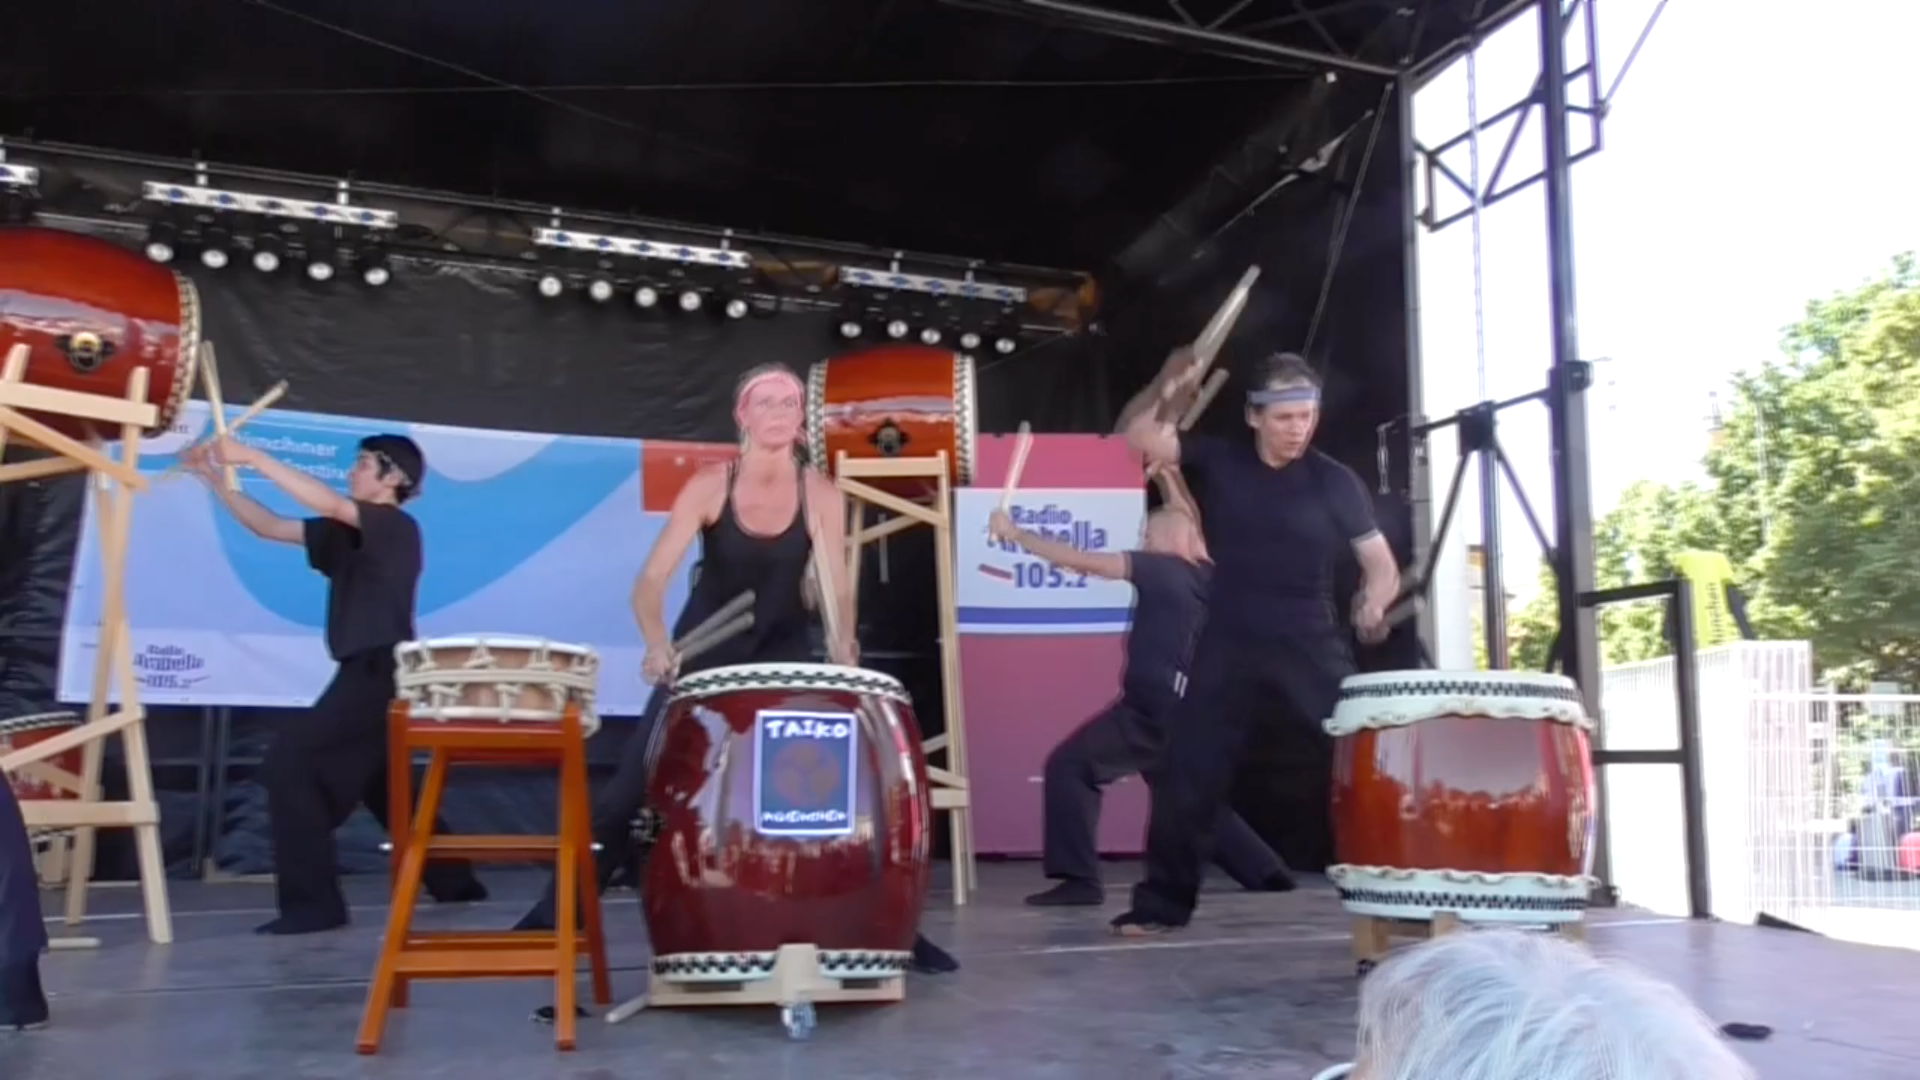 Taiko Drums ensemble - Munich Festival